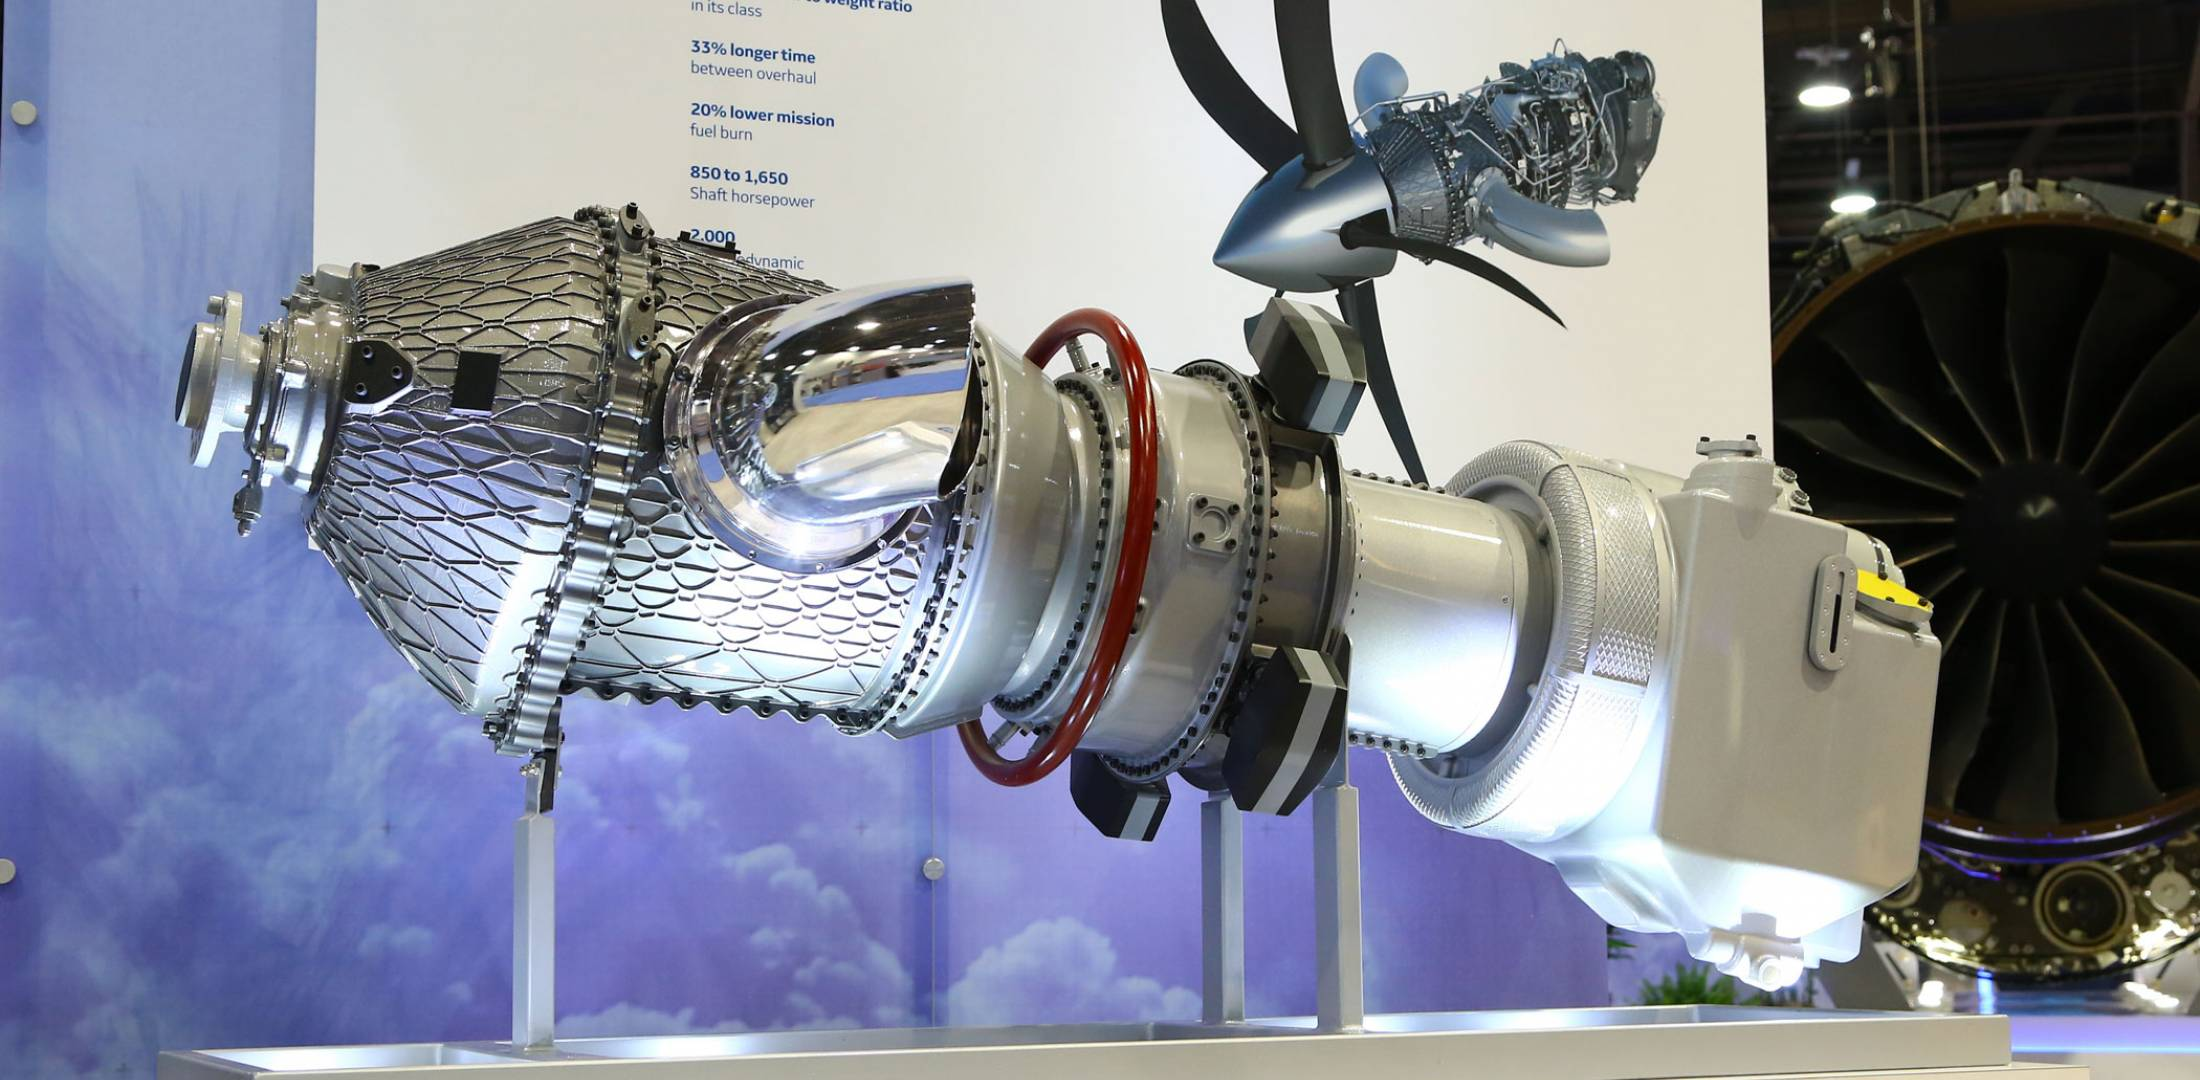 GE's ATP turboprop is close to first engine run. The company's Passport turbofan. PHOTO DAVID McINTOSH